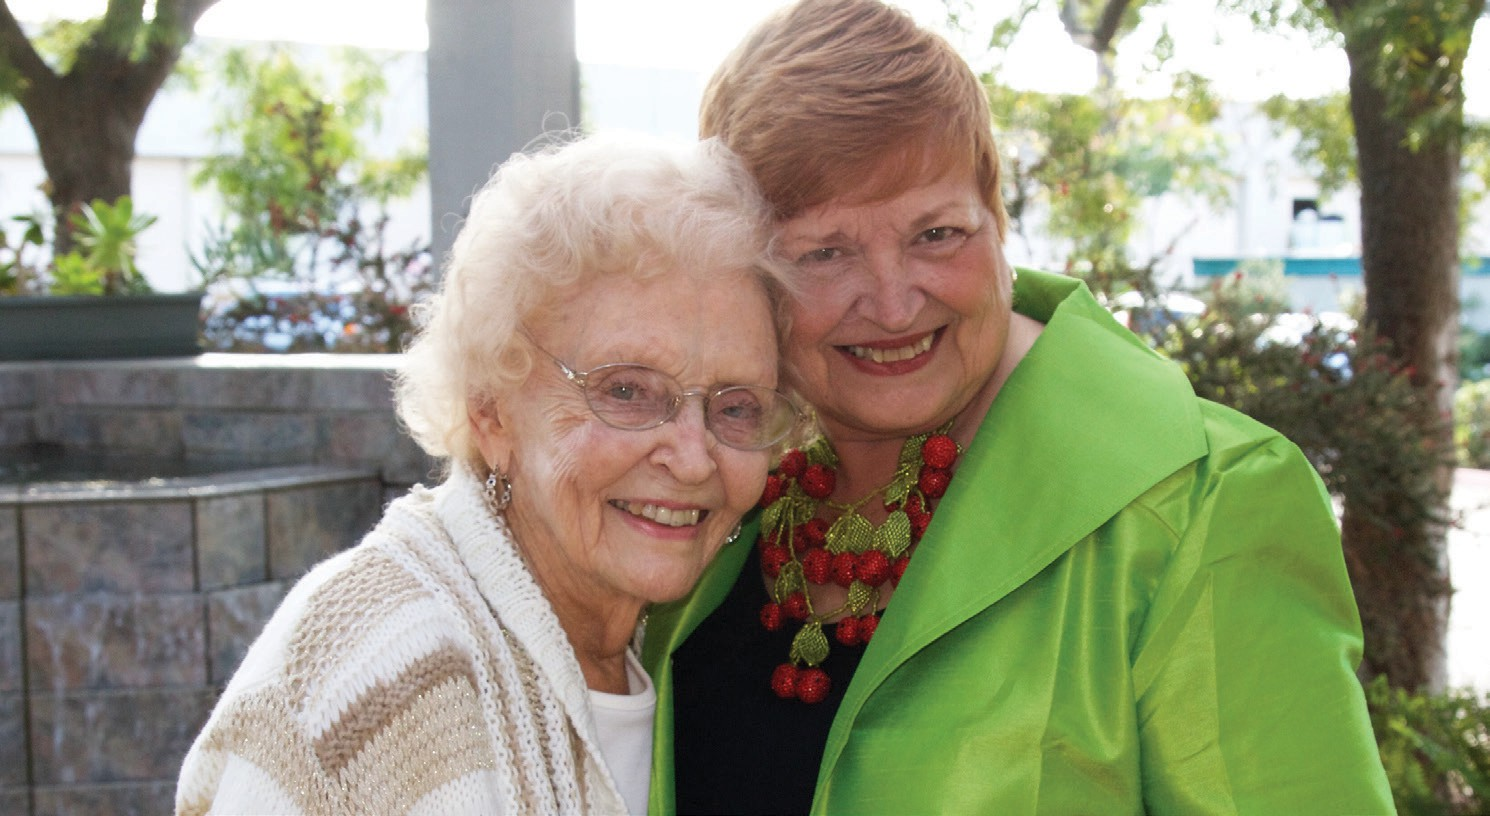 From left, Betty Bulen, founder of the Elizabeth Hospice and Jan Jones, CEO and president of the Elizabeth Hospice at the Light Up a Life ceremony on December 11.